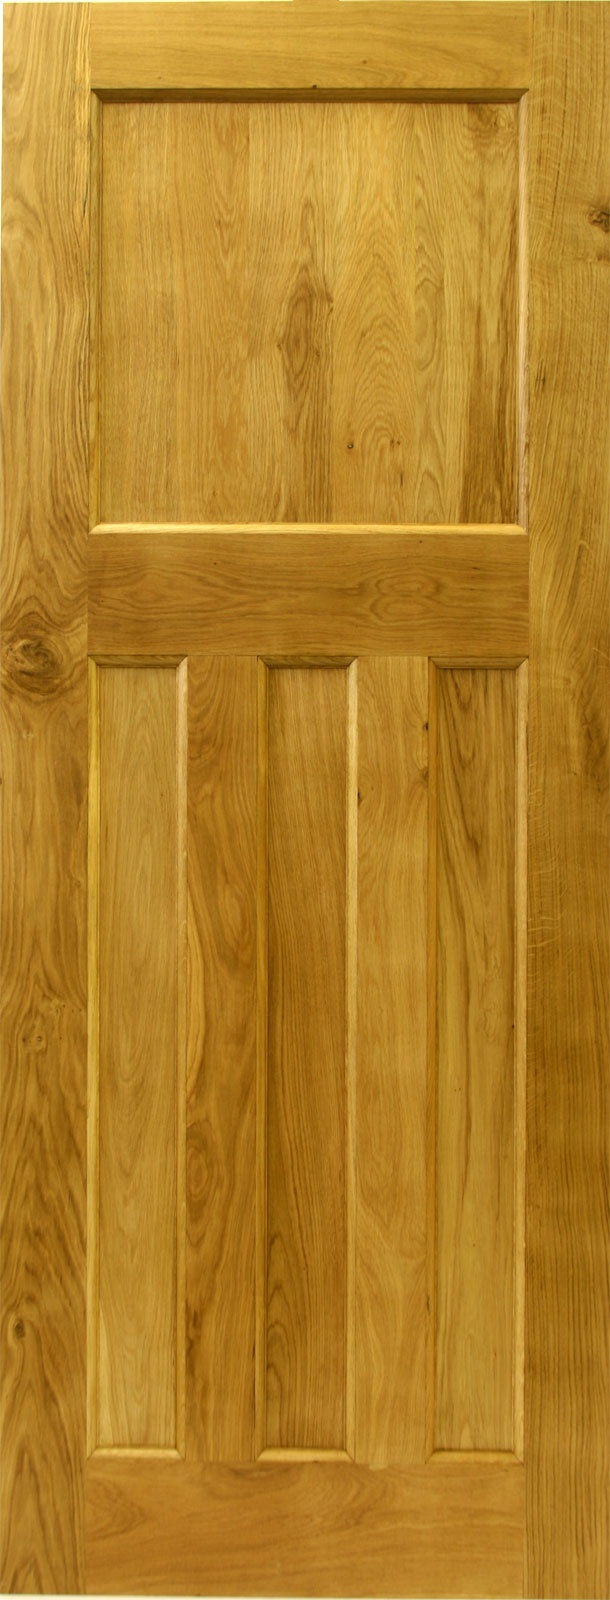 Our Solid Oak Style Internal Doors Help Give Your Home That Truly  Traditional Look! (%) Buy Today From The UKu0027s Leading Reputable 1930 Oak  Door Supplier!